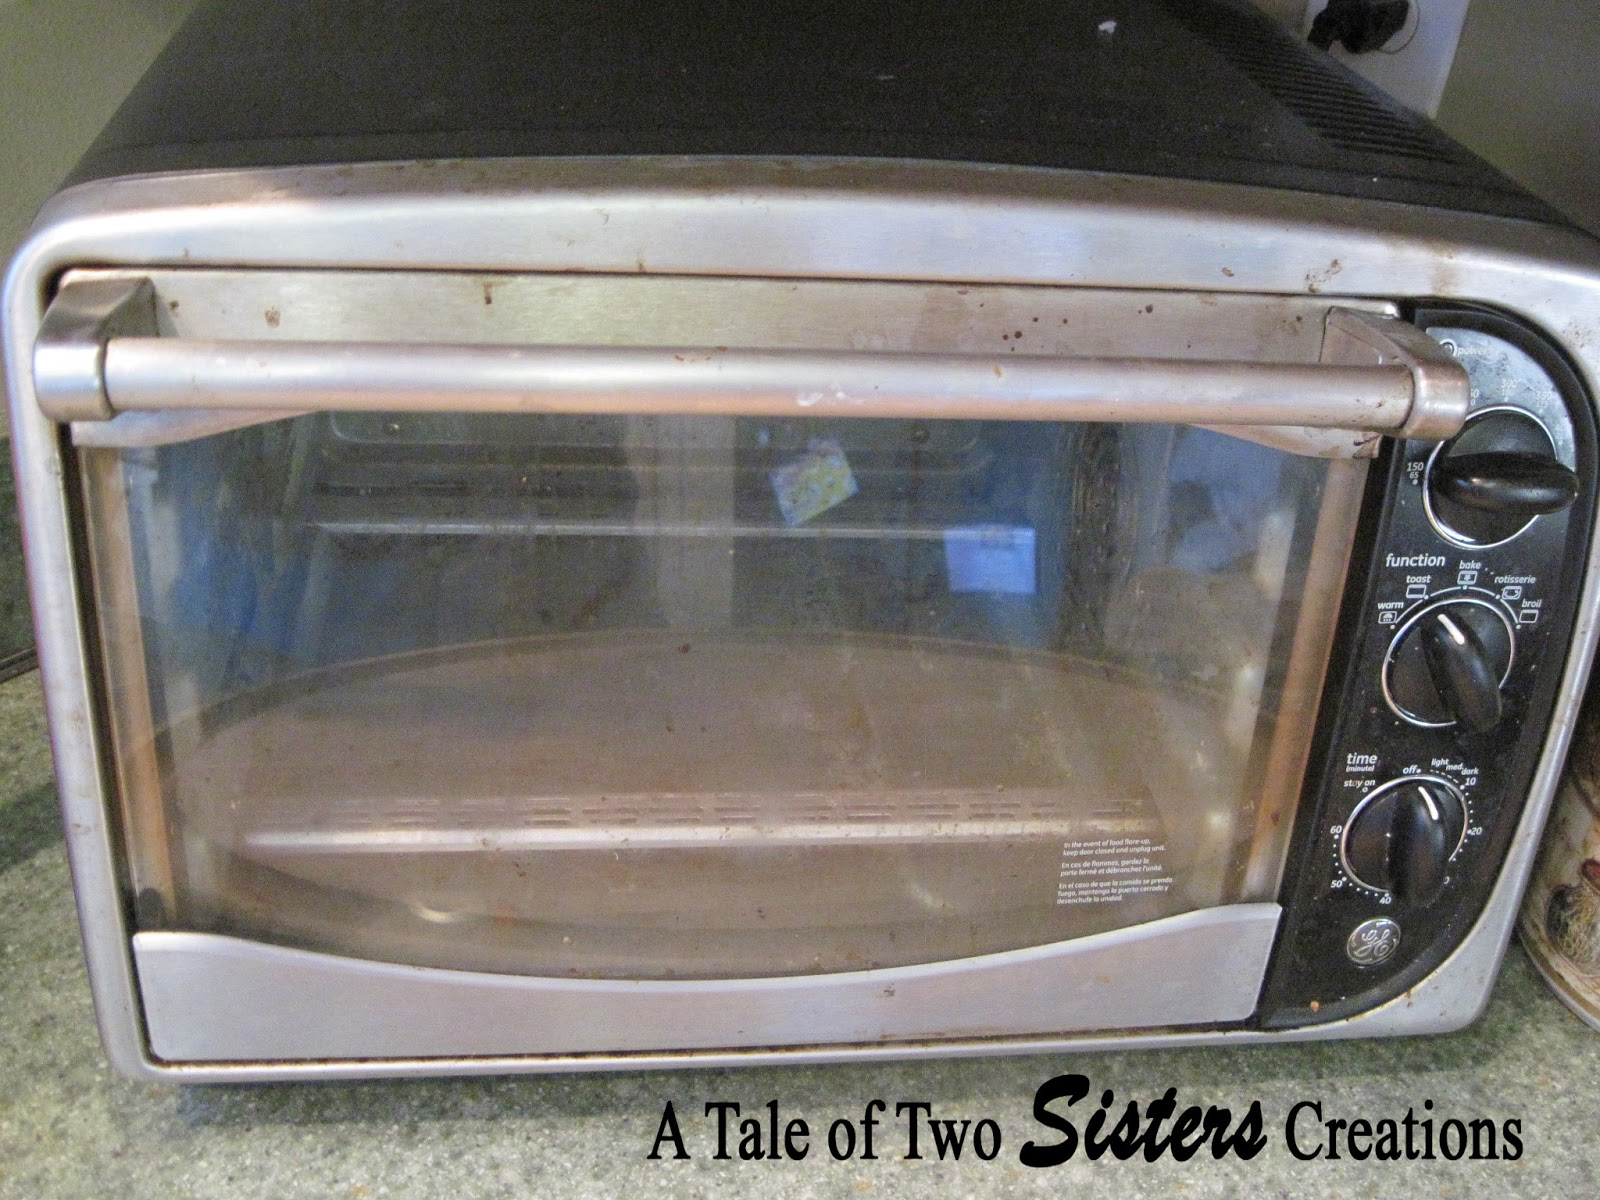 A Tale of Two Sisters Creations How to Clean Toaster Oven and